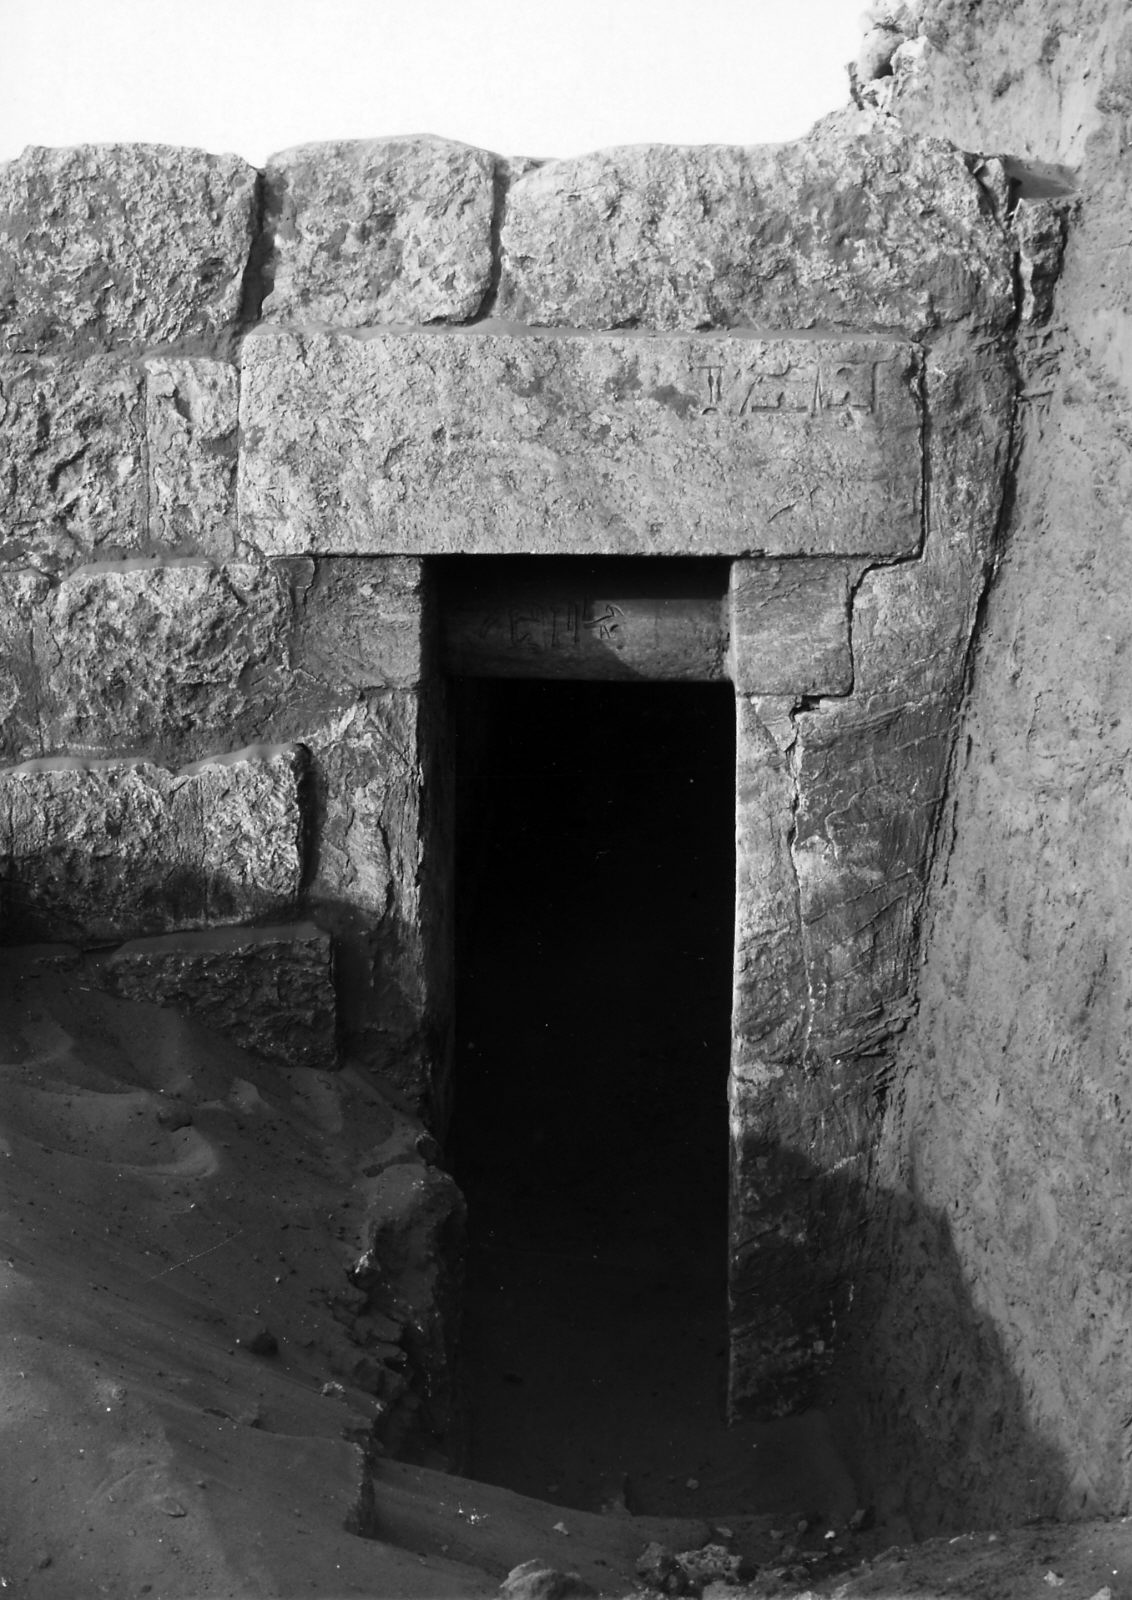 Mastaba of Meshetj, chapel corridor entrance, inscribed lintel and drum lintel, looking north. Photo ID KHM_AEOS_II_2954, photo and description courtesy of the Giza Archives maintained by Harvard University and the Museum of Fine Arts Boston, online at Digital Giza.